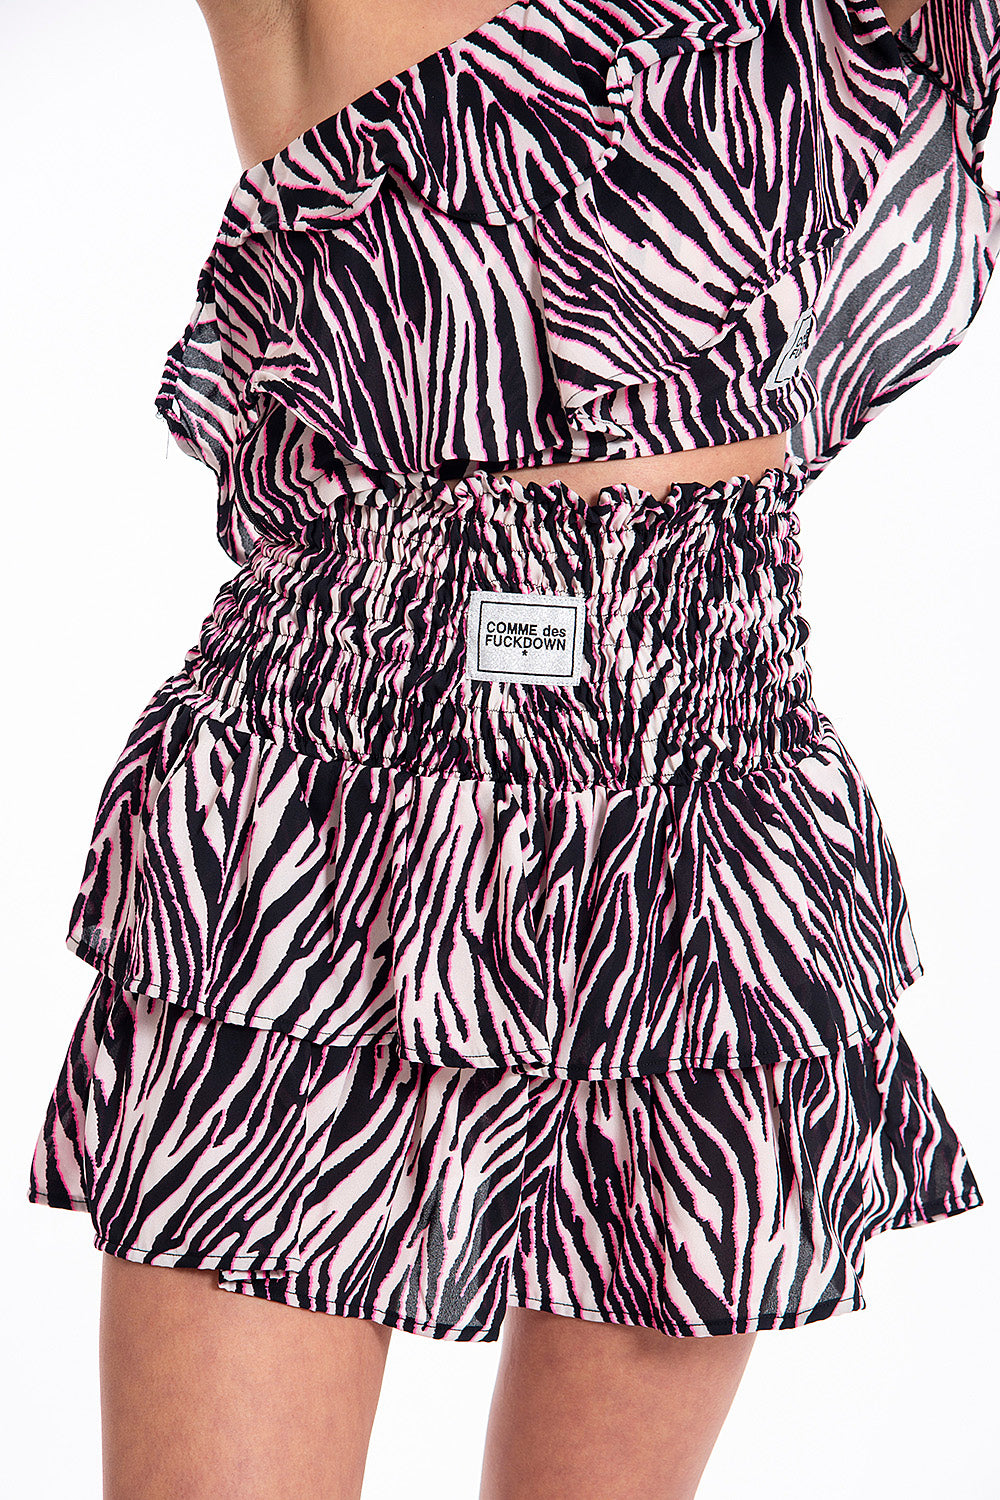 Comme des Fuckdown pink zebra skirt with ruffles